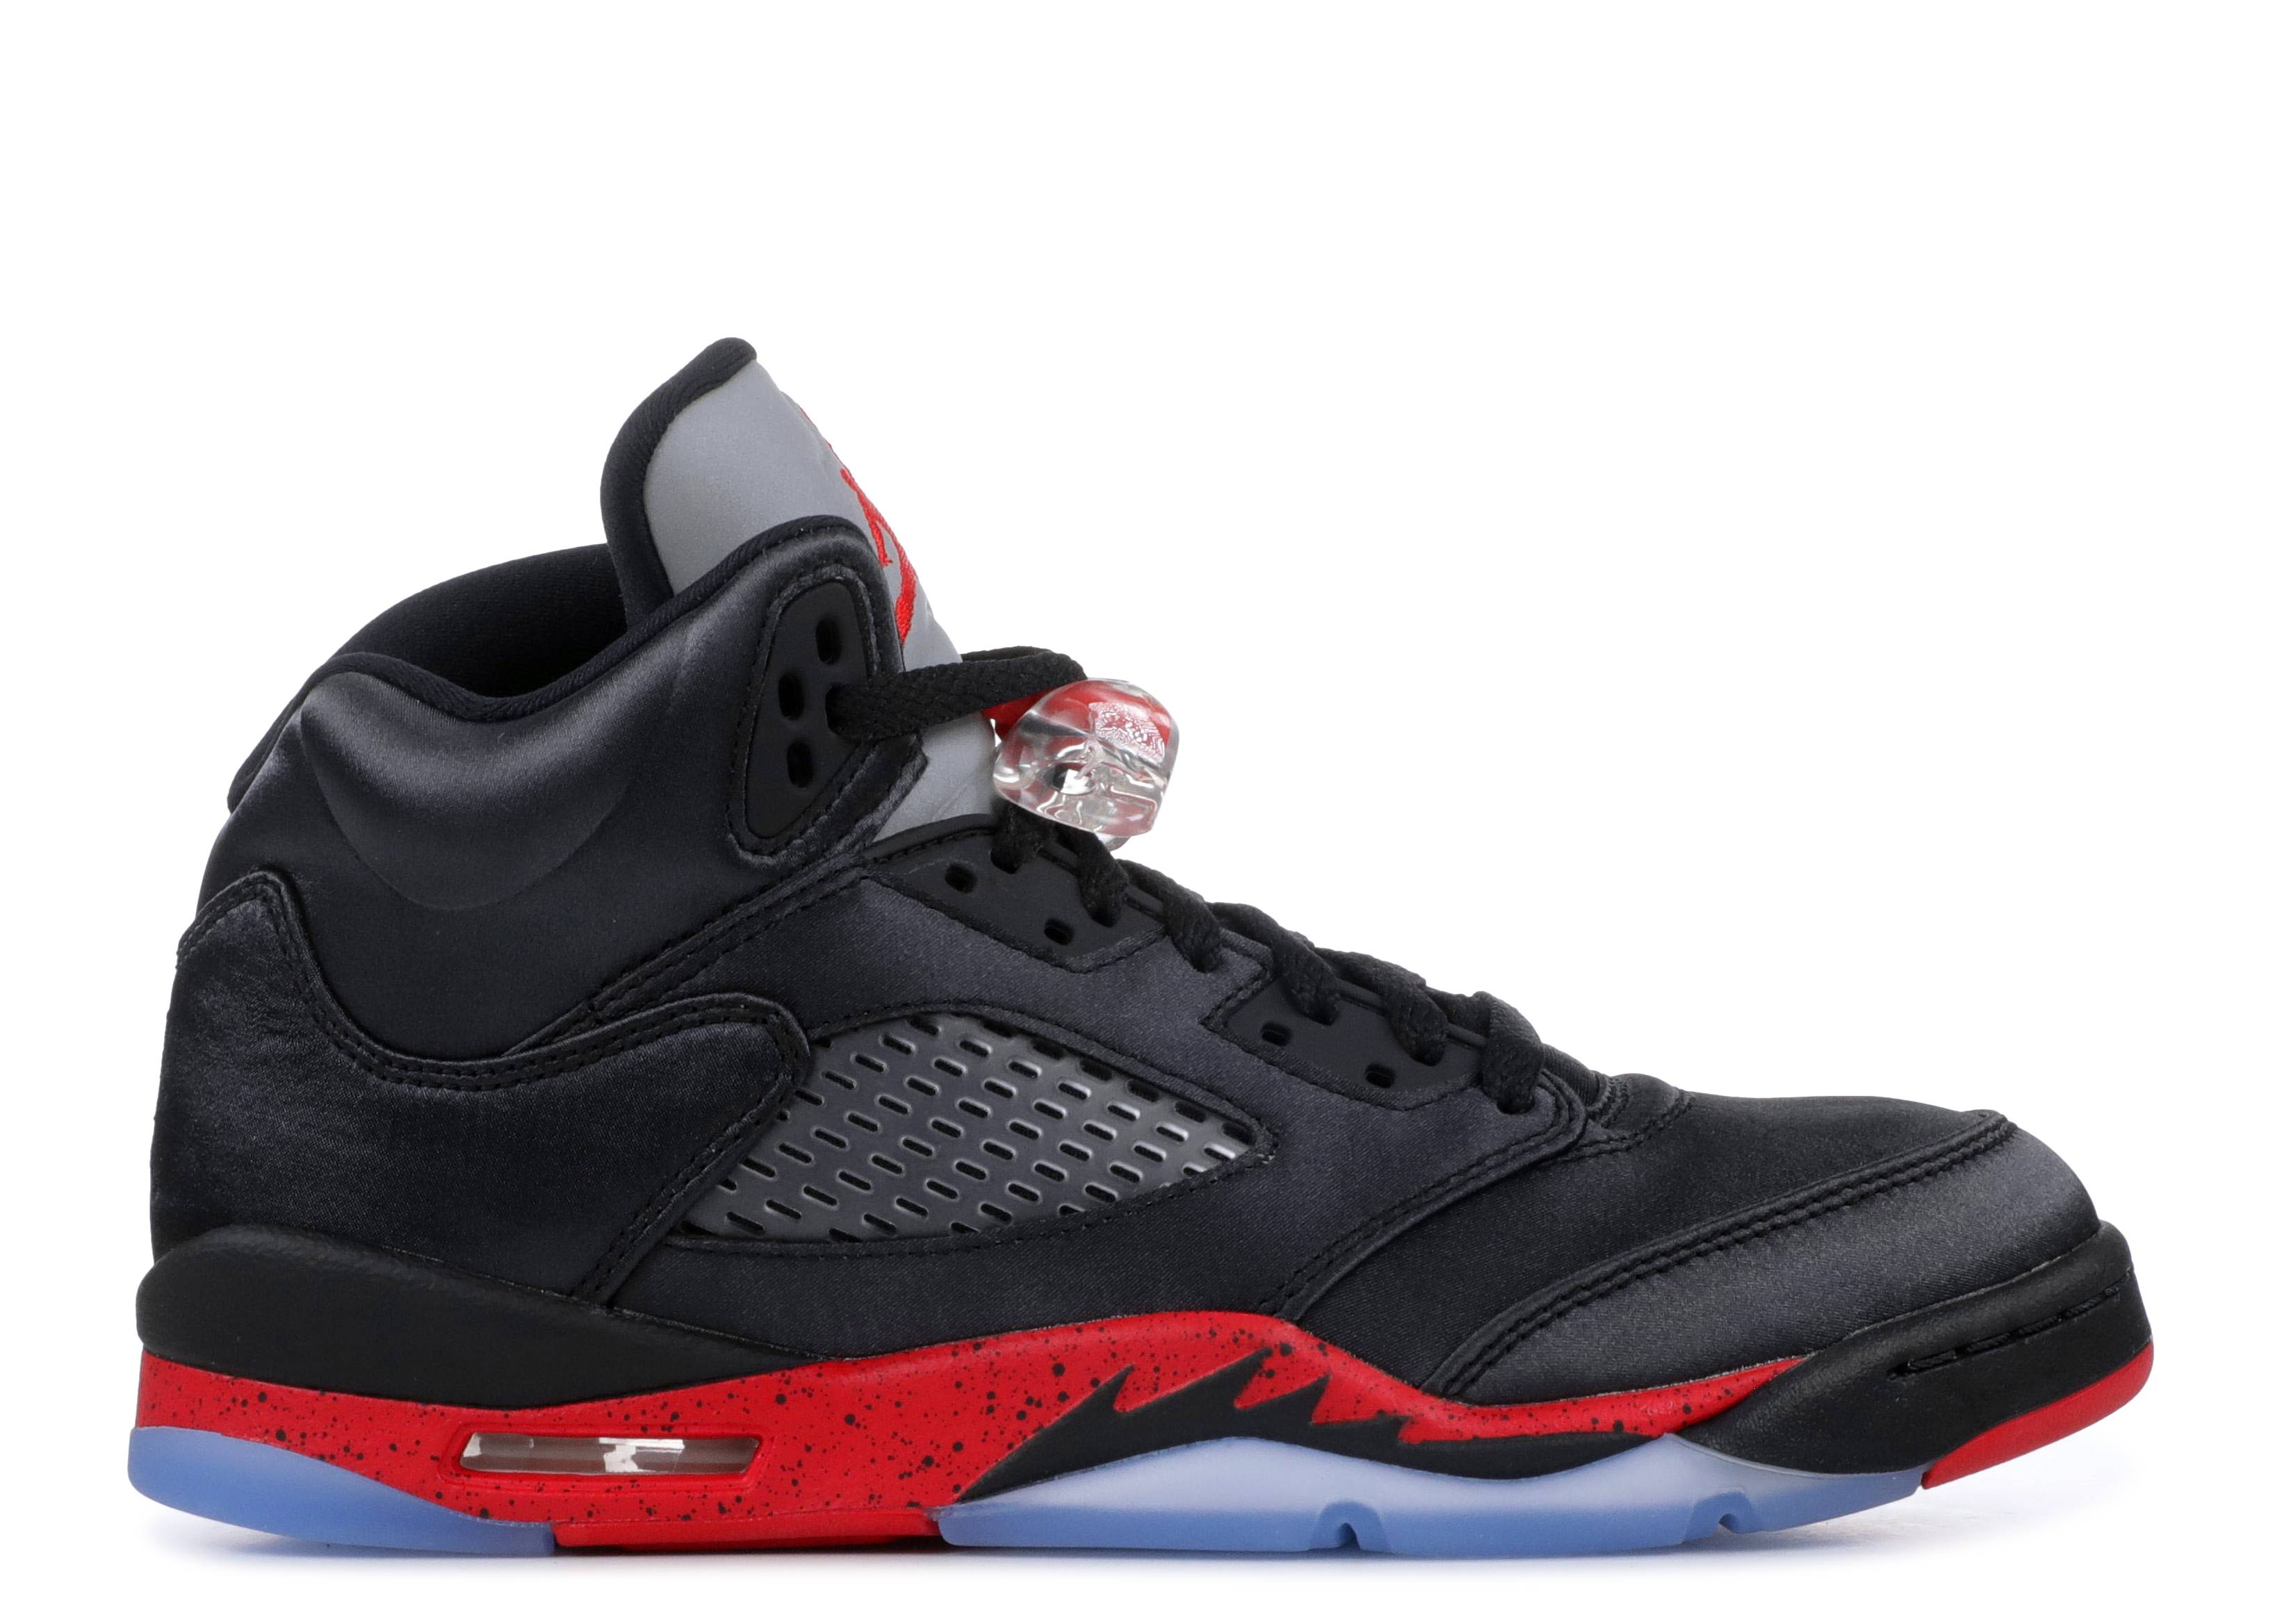 new product 4326b 5d7bc Air Jordan 5 (V) - Nike | Flight Club